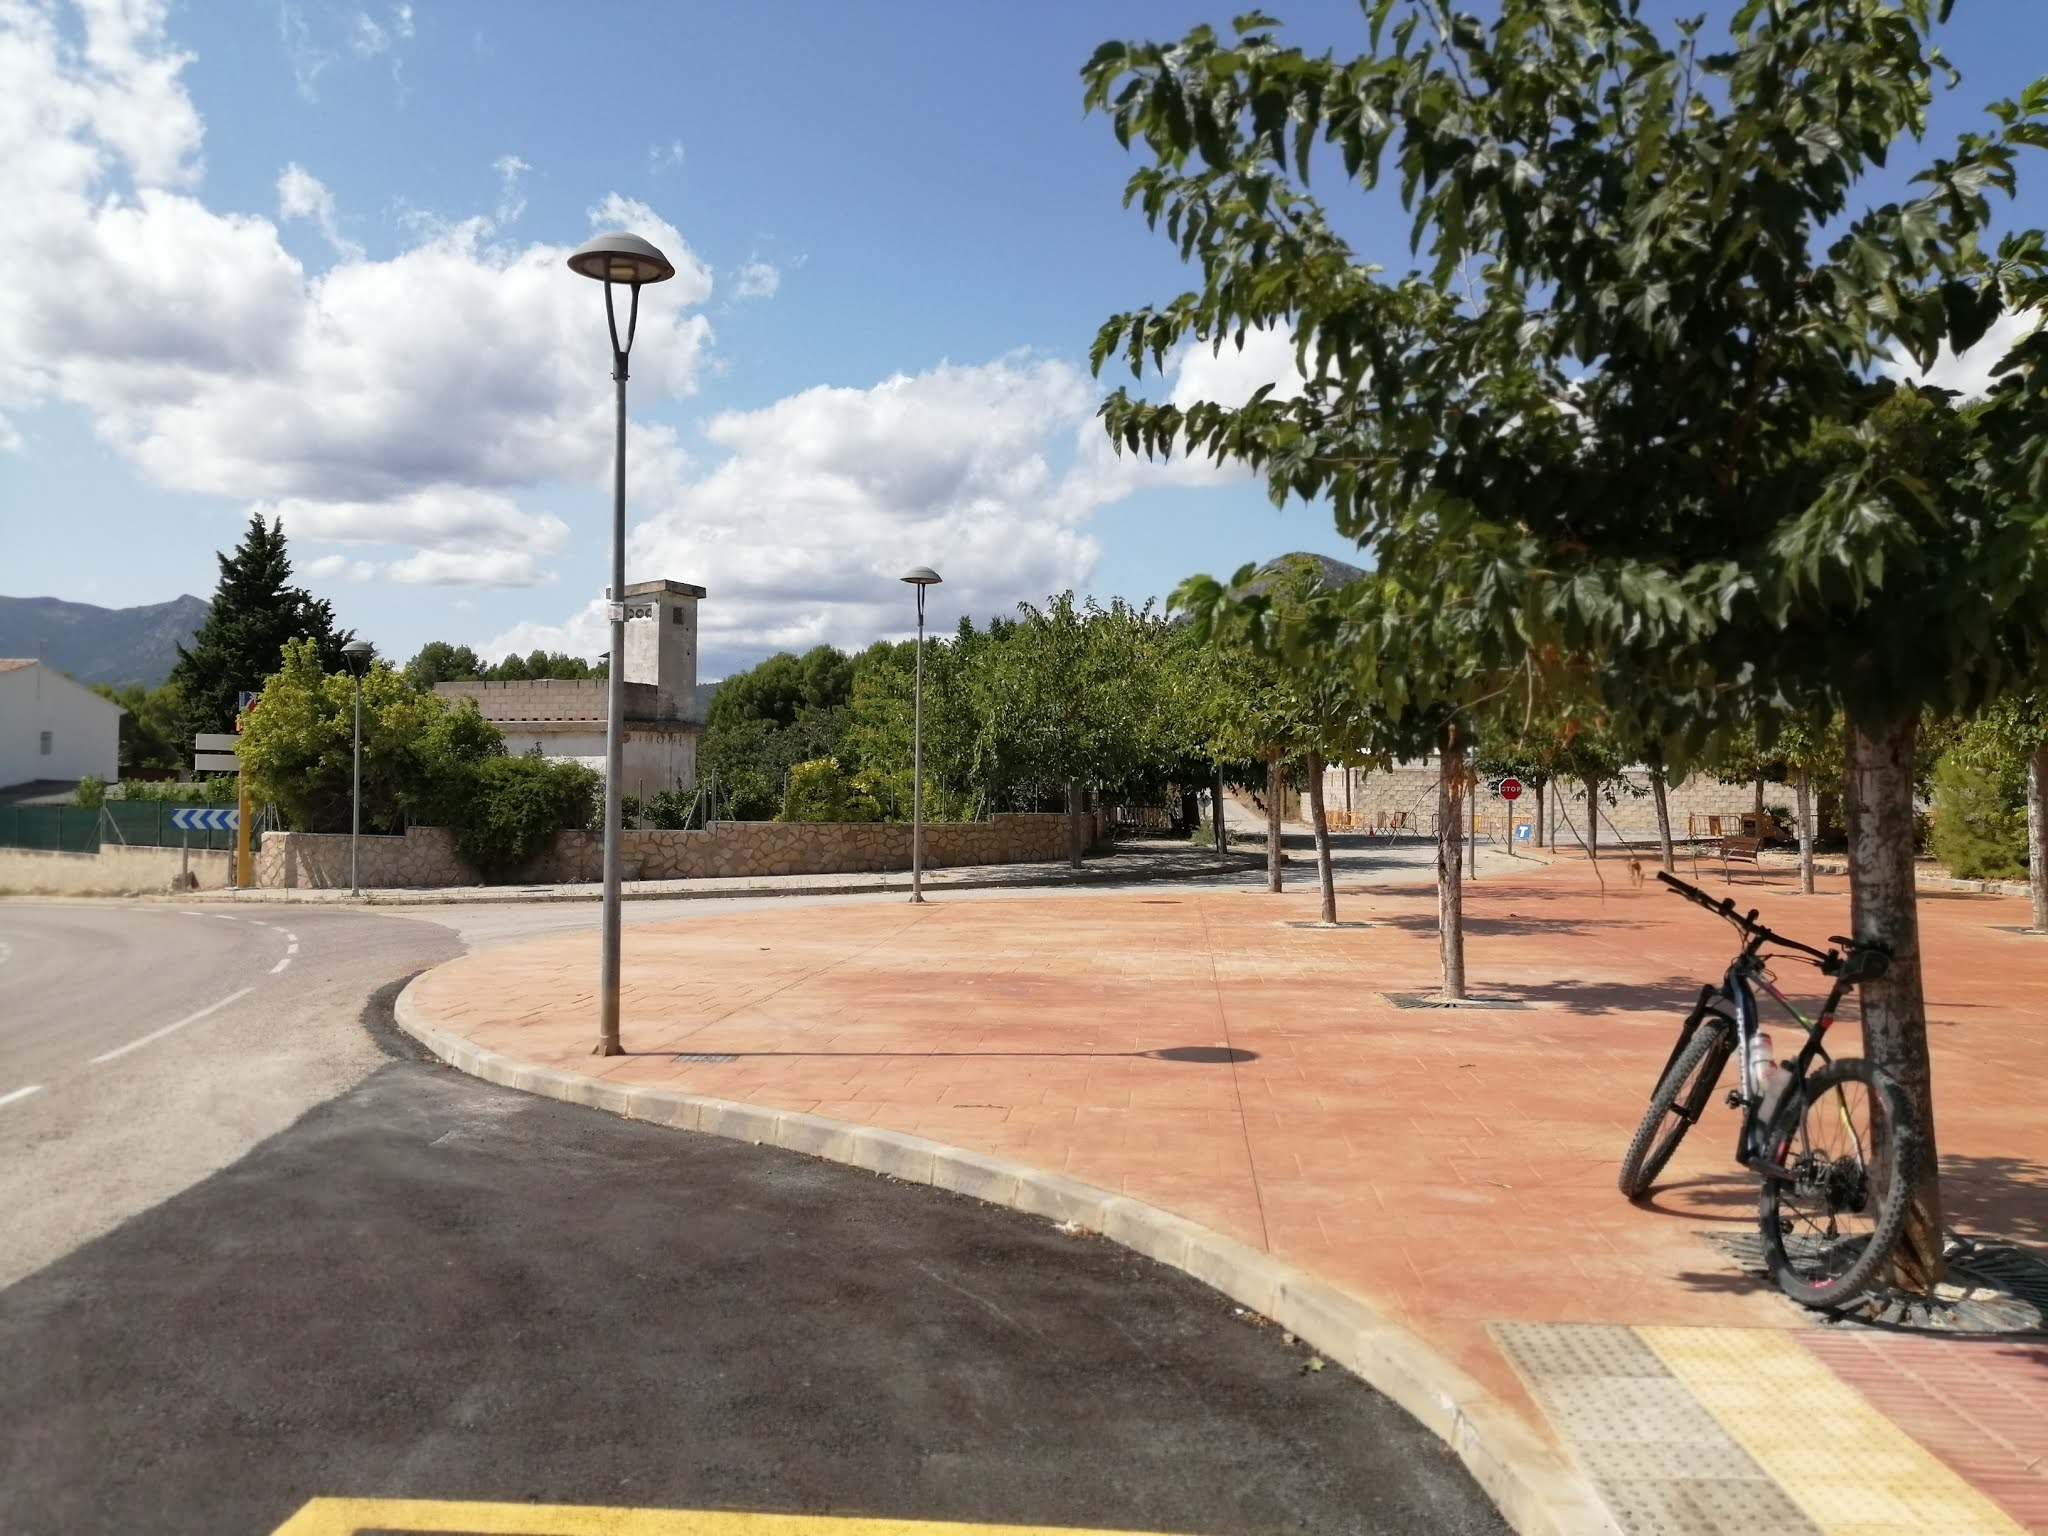 The Serpis Greenway as it leaves Gaianes, Alicante